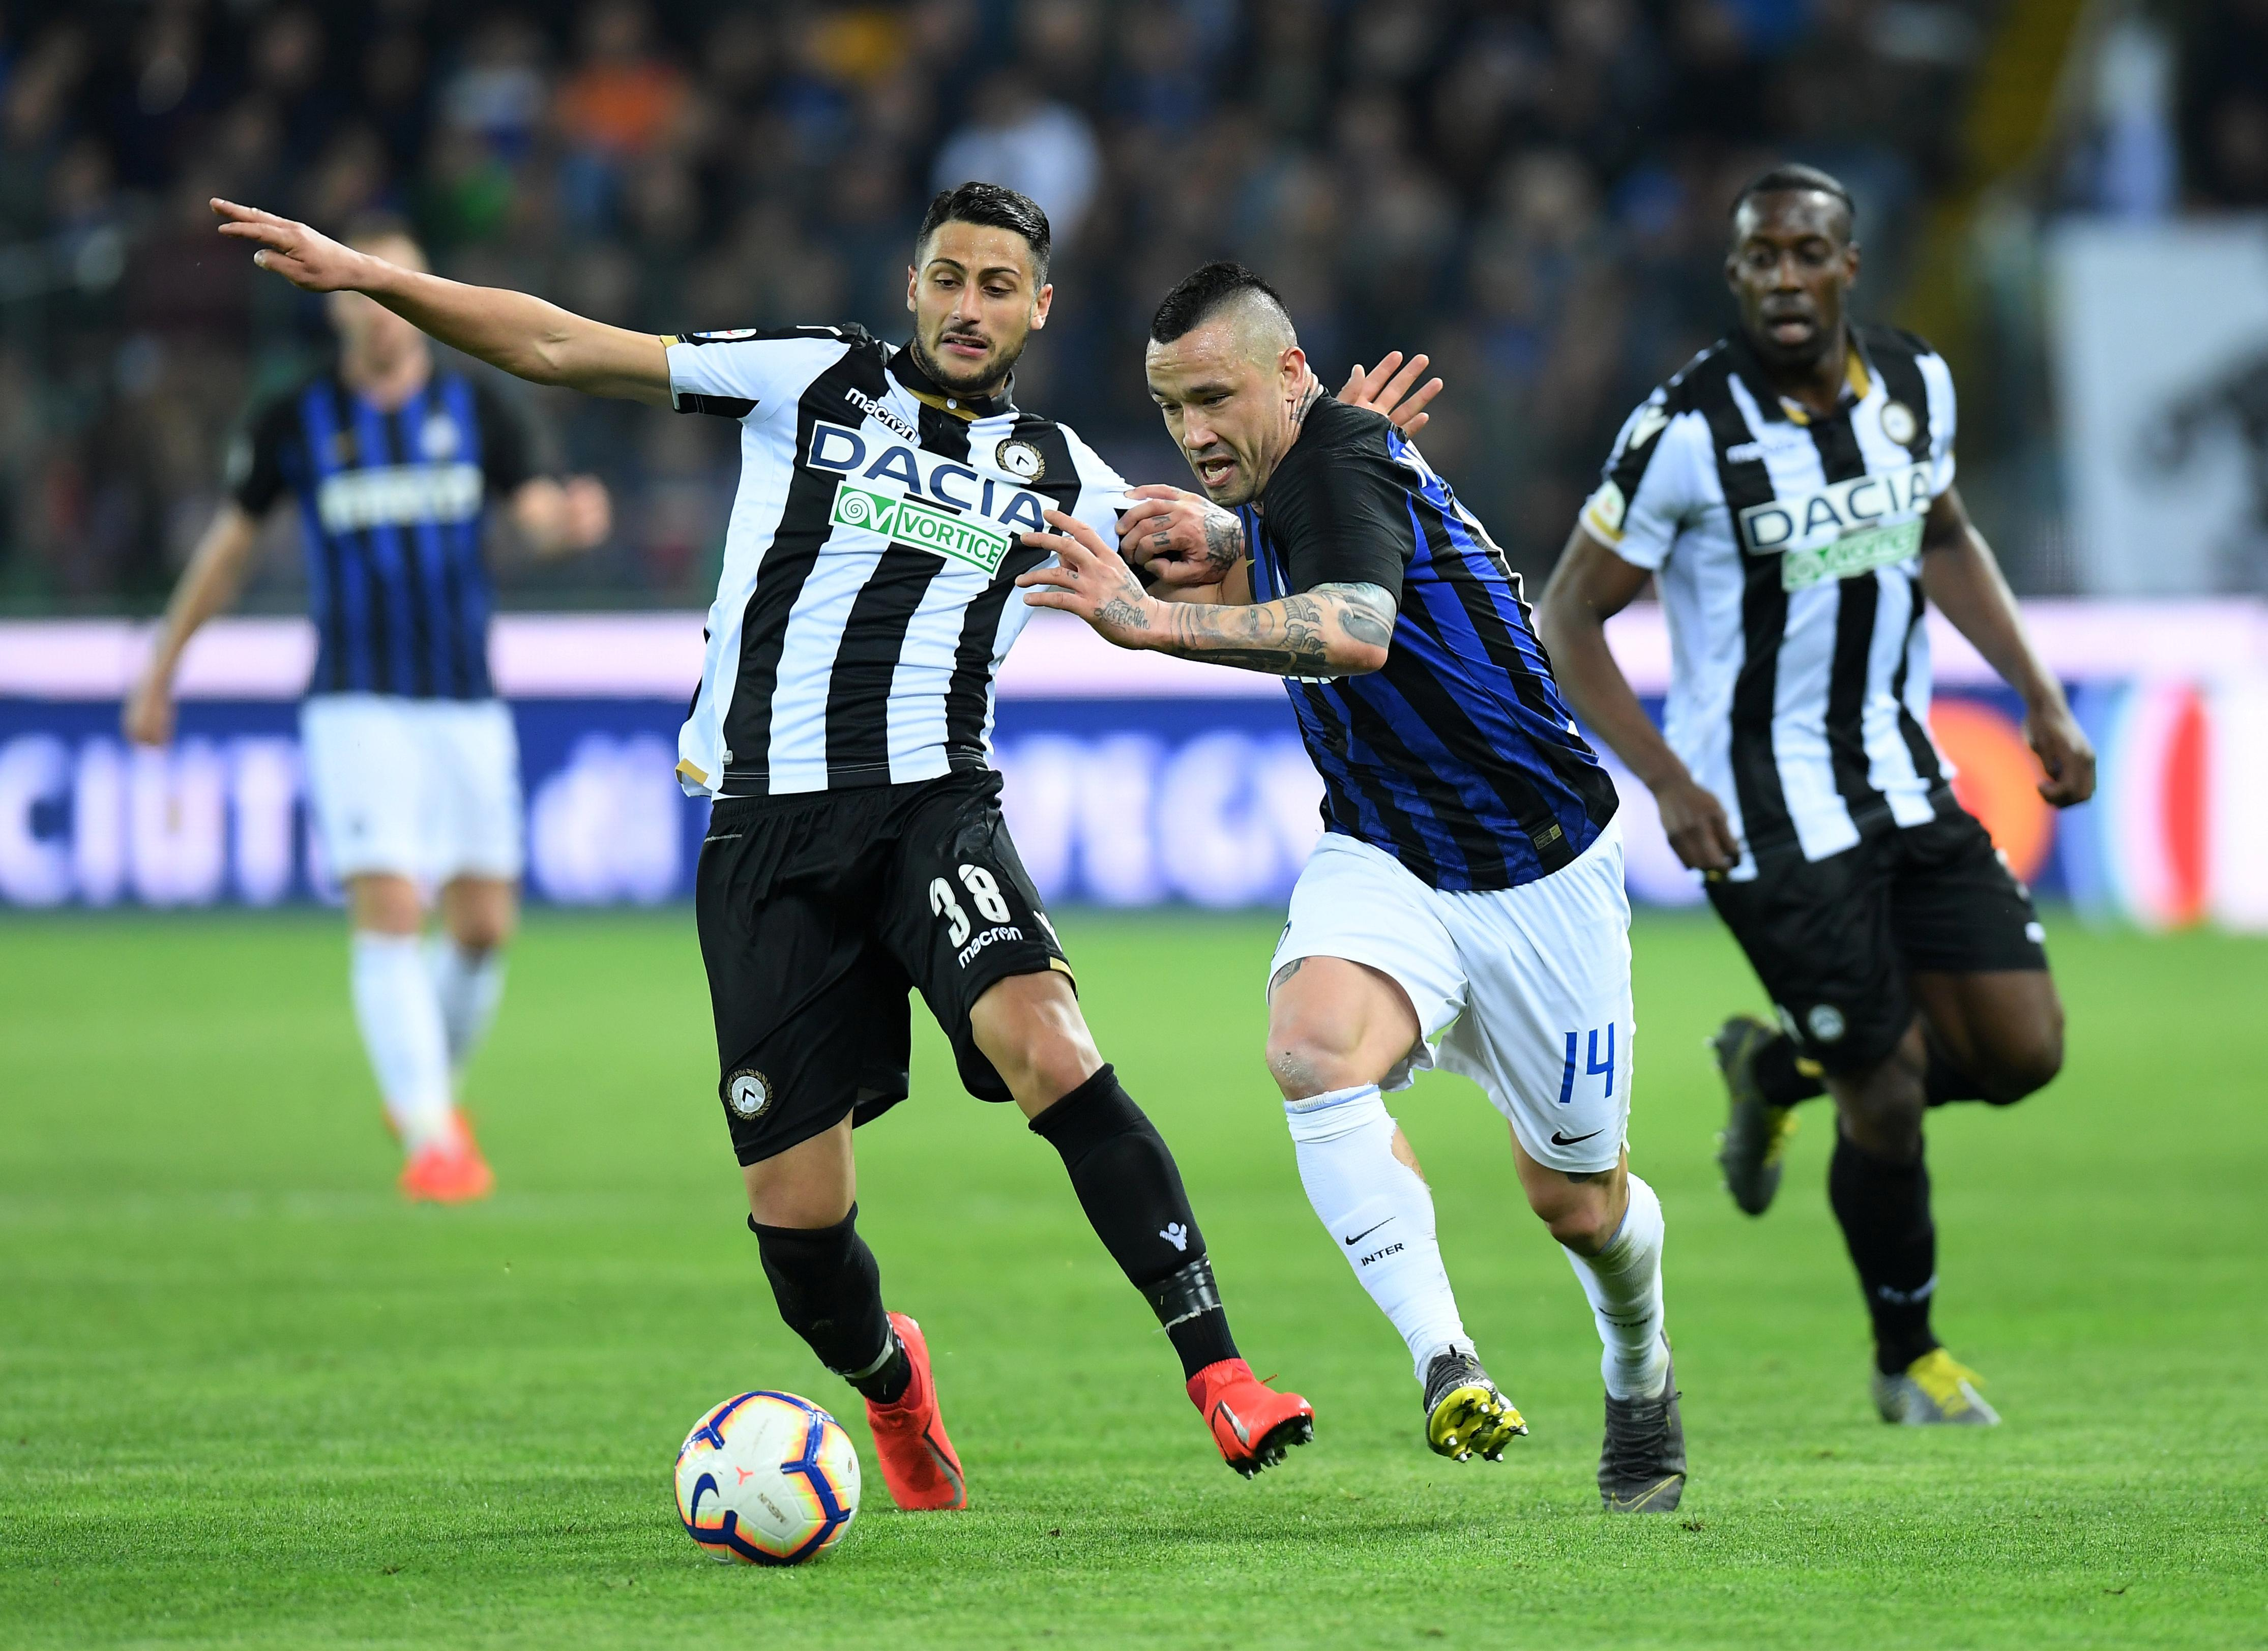 Soccer: Inter Milan held to another stalemate away to struggling Udinese